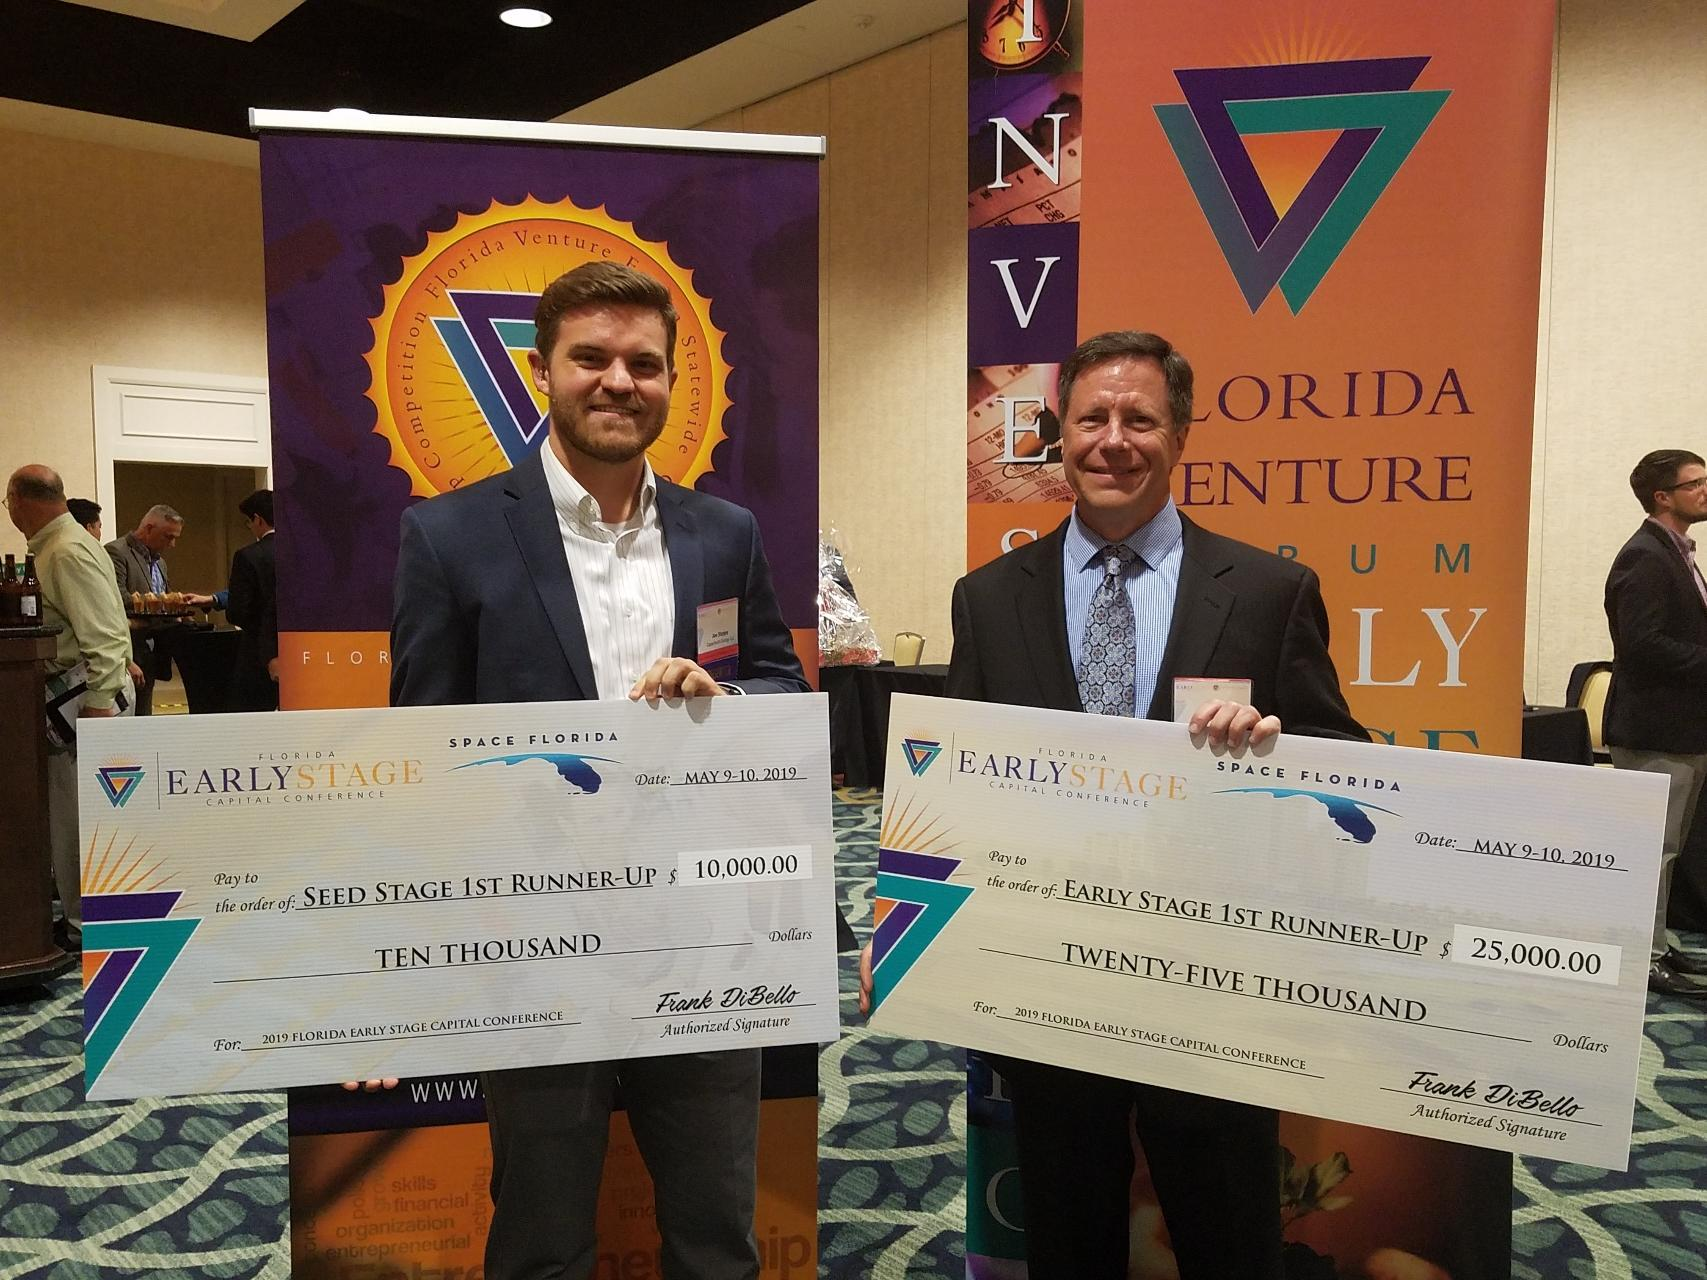 Joe Sleppy (left) of Capacitech Energy and Rodney Bosley (right) of SegAna at the Florida Venture Forum award ceremony in the Omni Resort in Orlando, Florida.